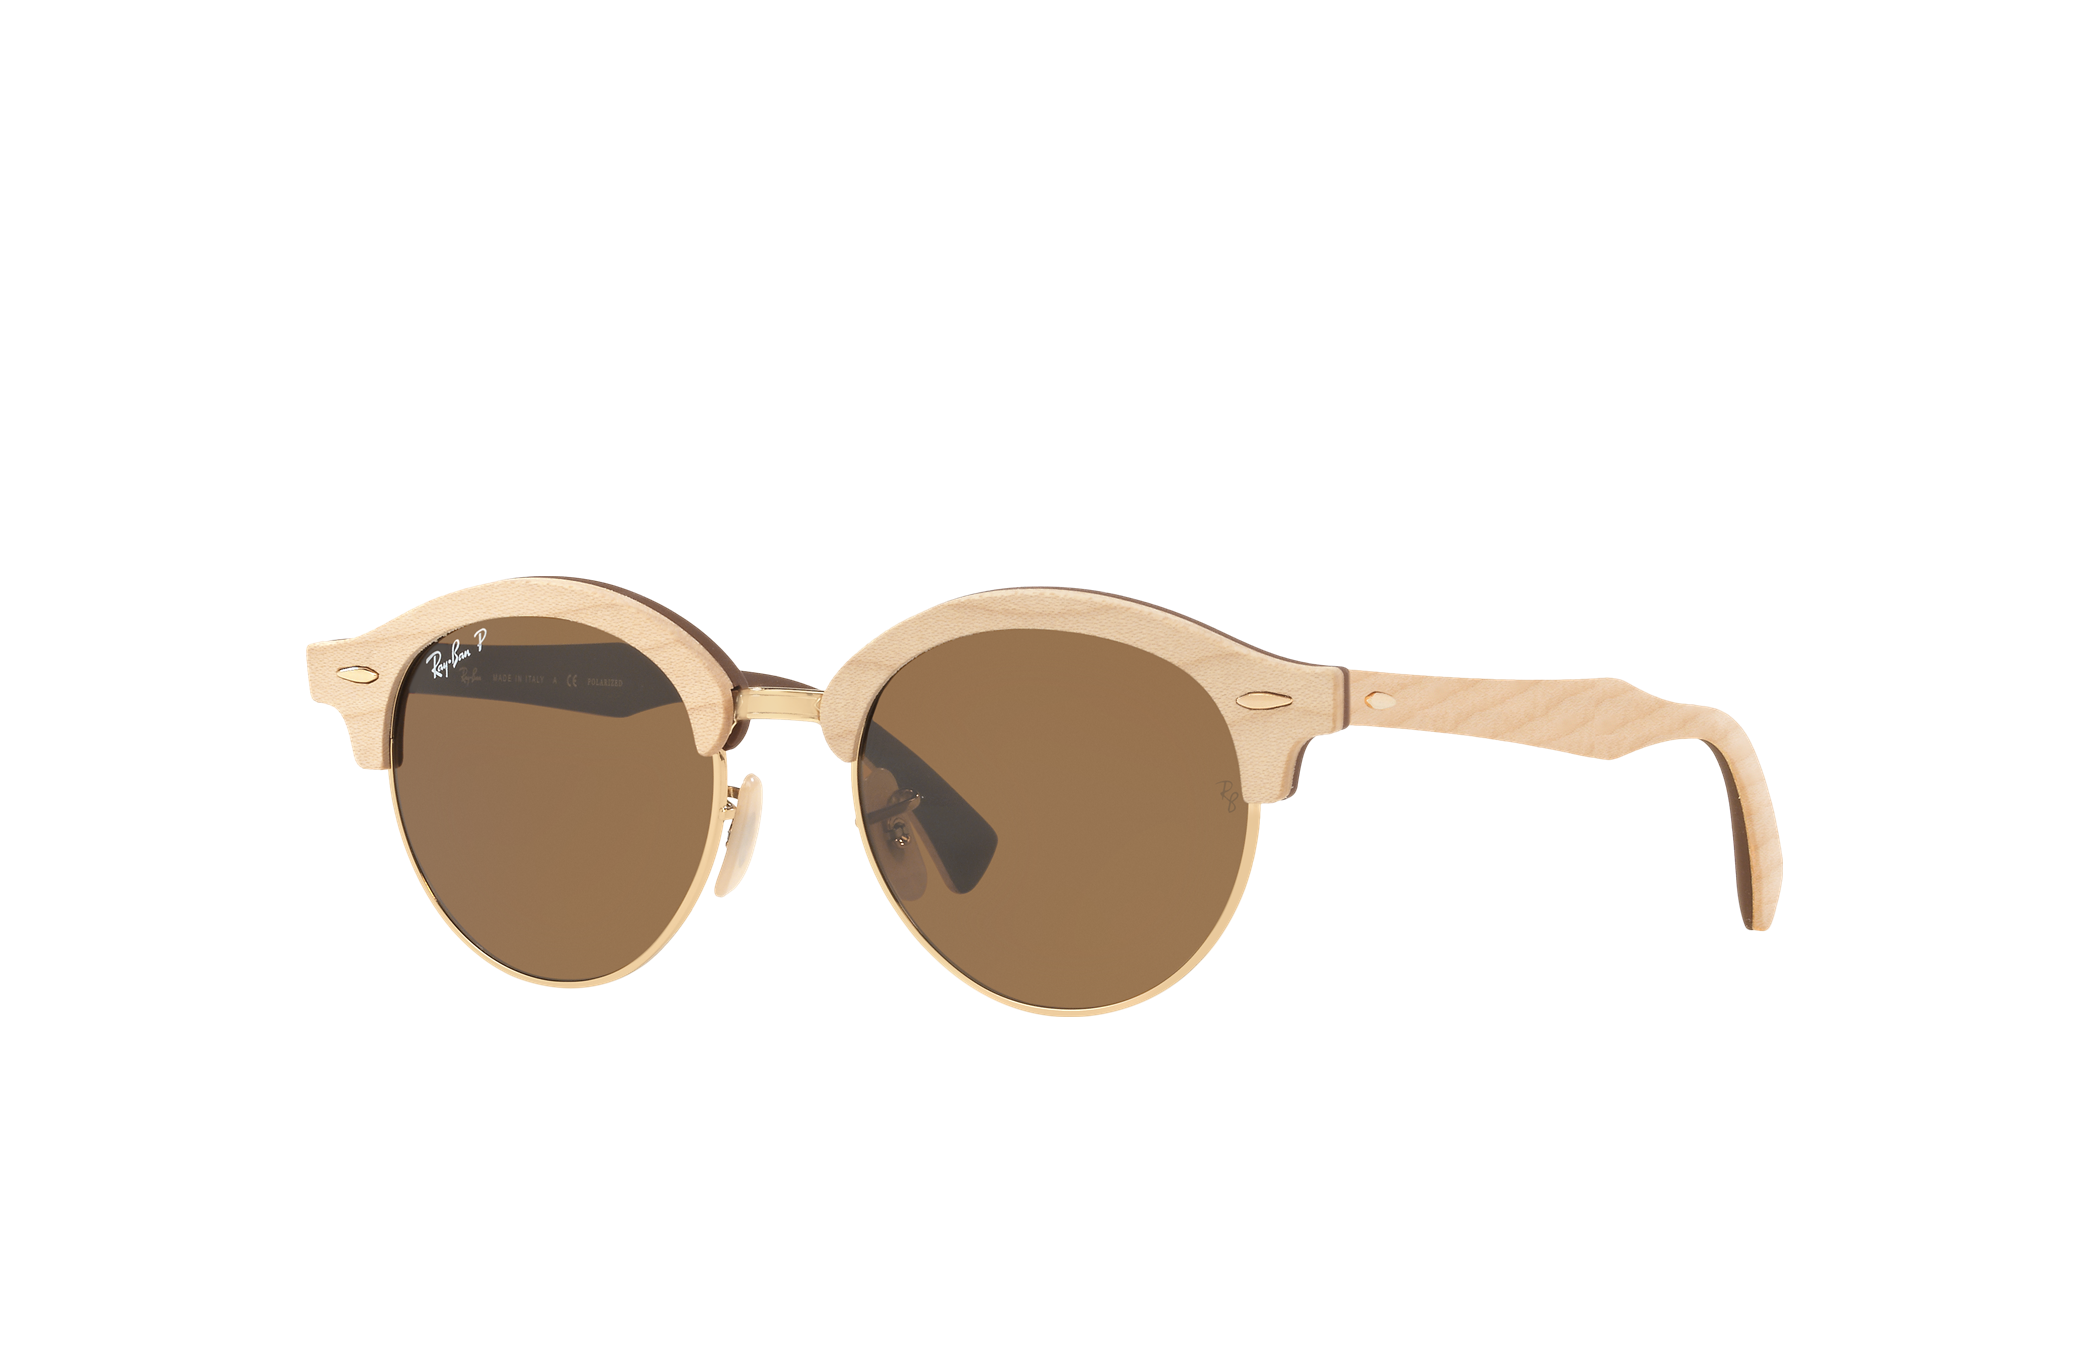 Ray-Ban Clubround Wood Brown, Polarized Brown Lenses - RB4246M